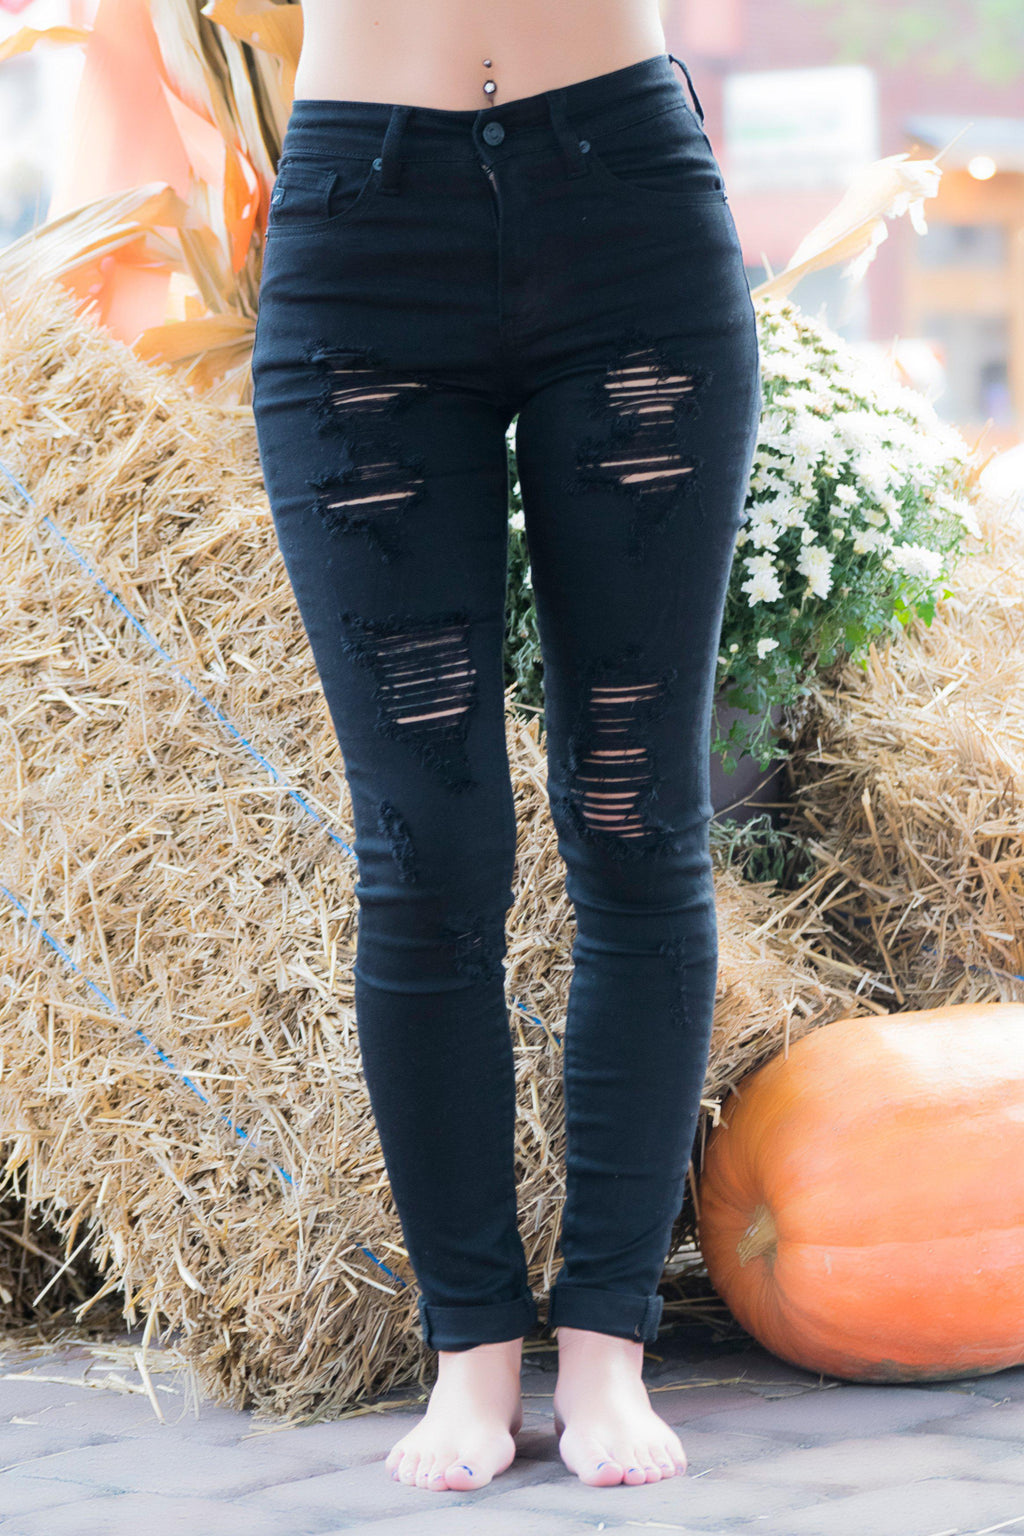 Emberly High Rise KanCan Black Distressed Jeans - 512 Boutique